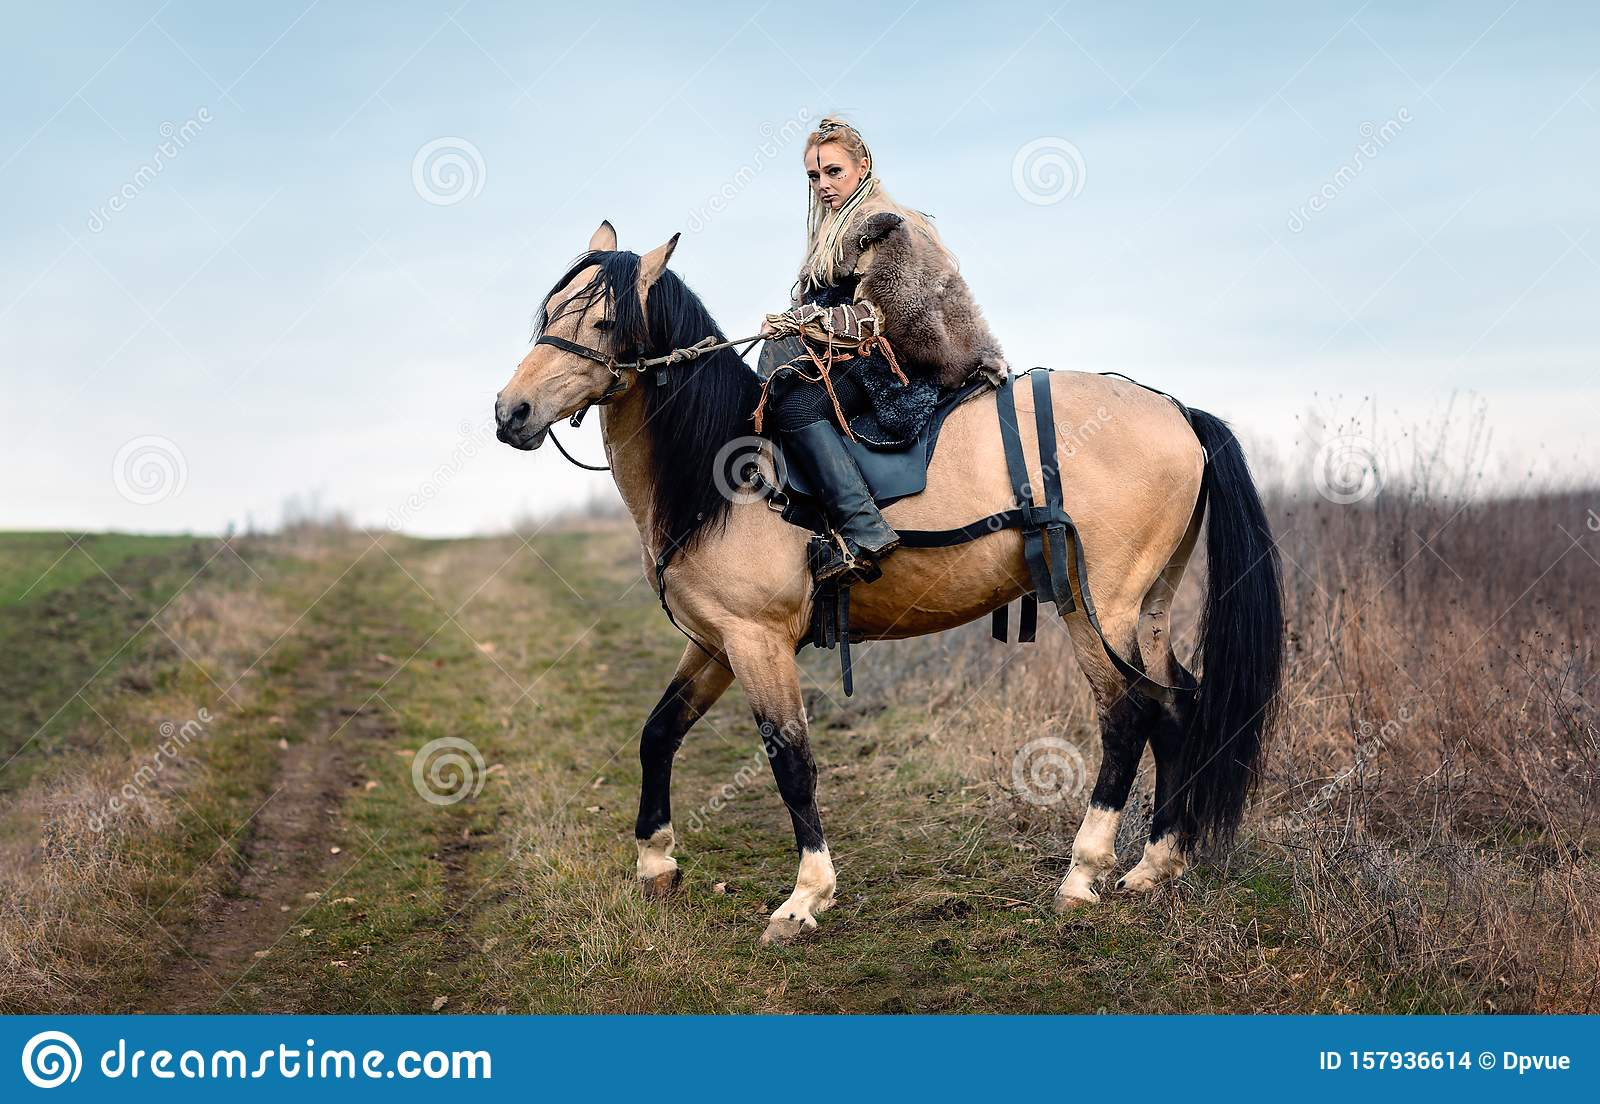 Warrior Viking Blonde Female Riding A Horse Medieval Movie Scene Stock Photo Image Of Movie Beauty 157936614